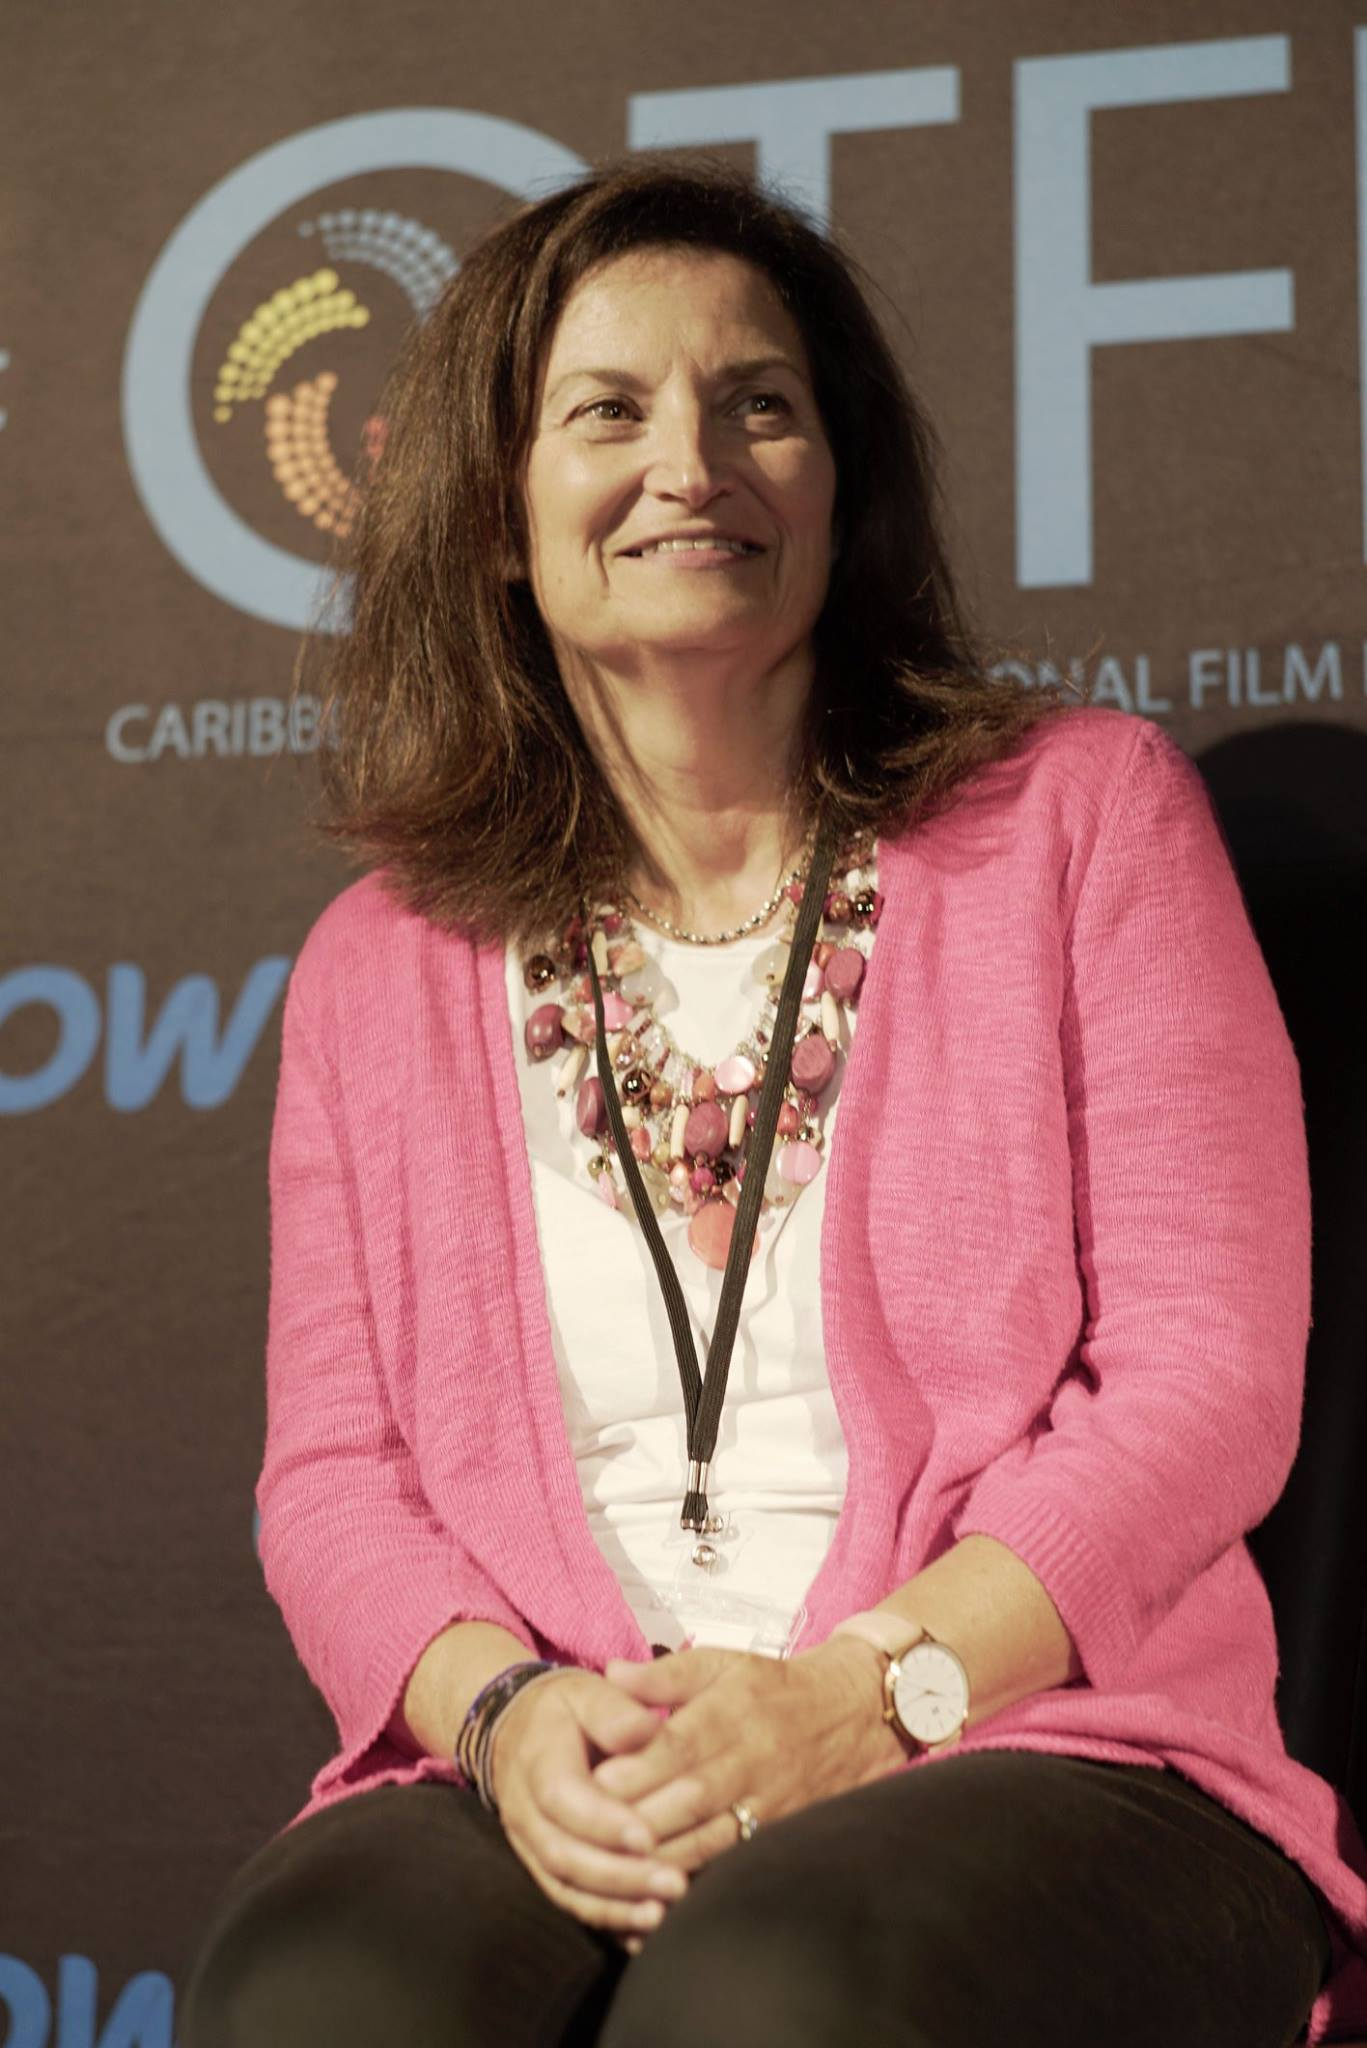 Gayle Wilmot at the Q&A of the Caribbean Tales Film Festival screening